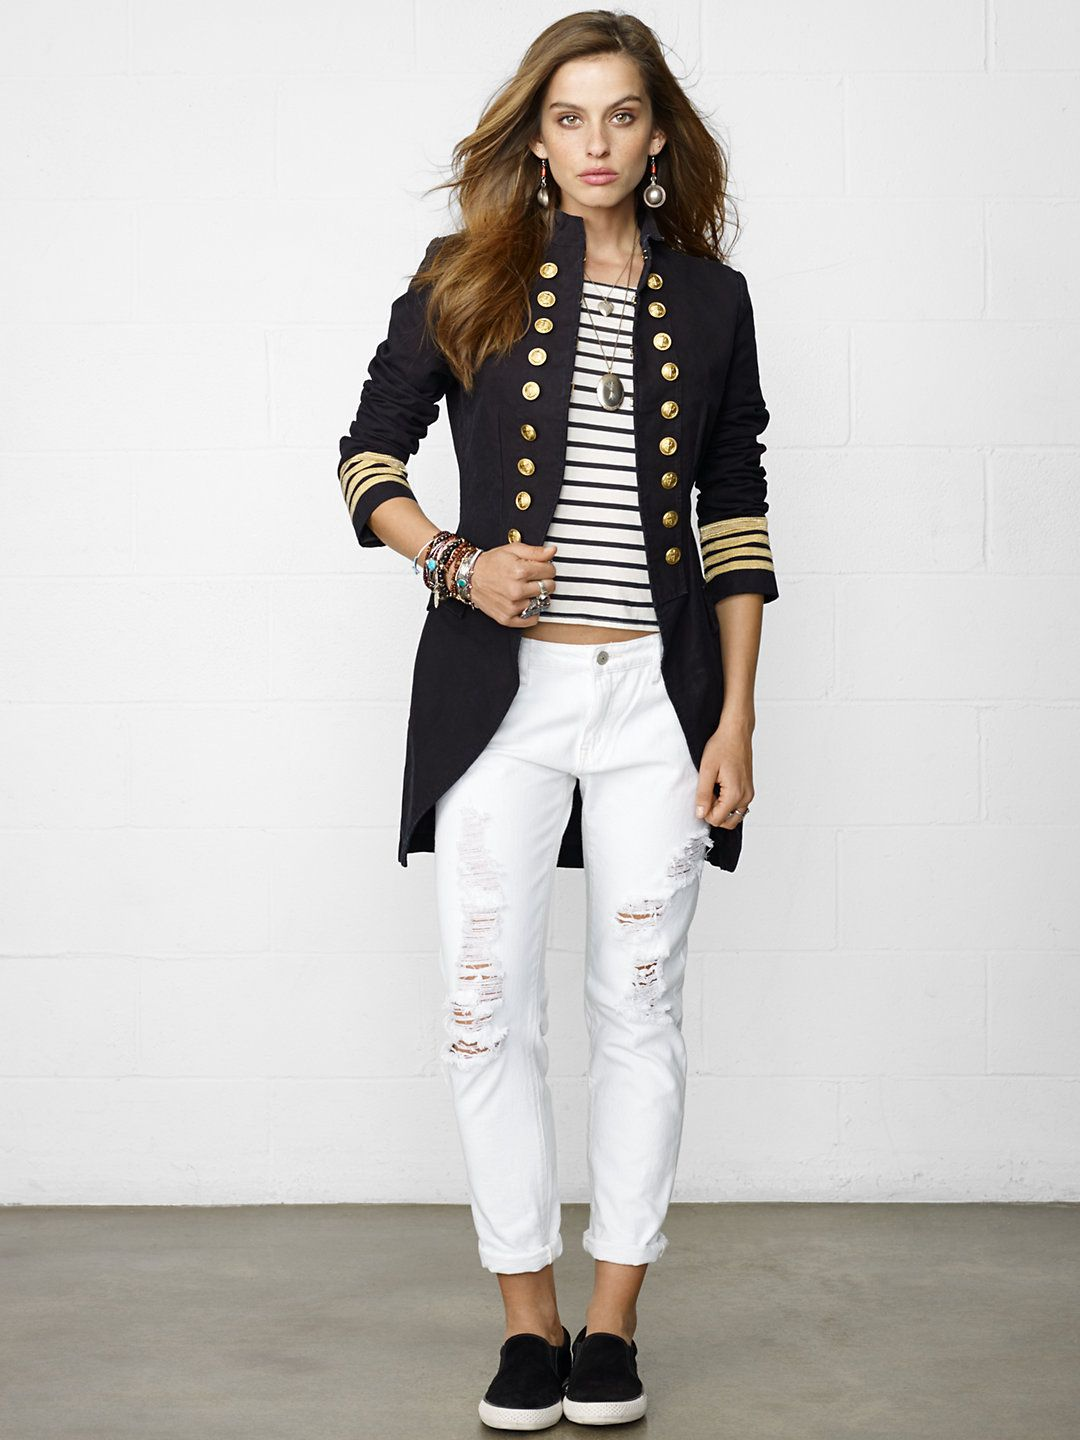 Captain S Coat Outerwear Jackets Outerwear Ralphlauren Com Military Inspired Fashion Military Fashion Clothes [ 1440 x 1080 Pixel ]